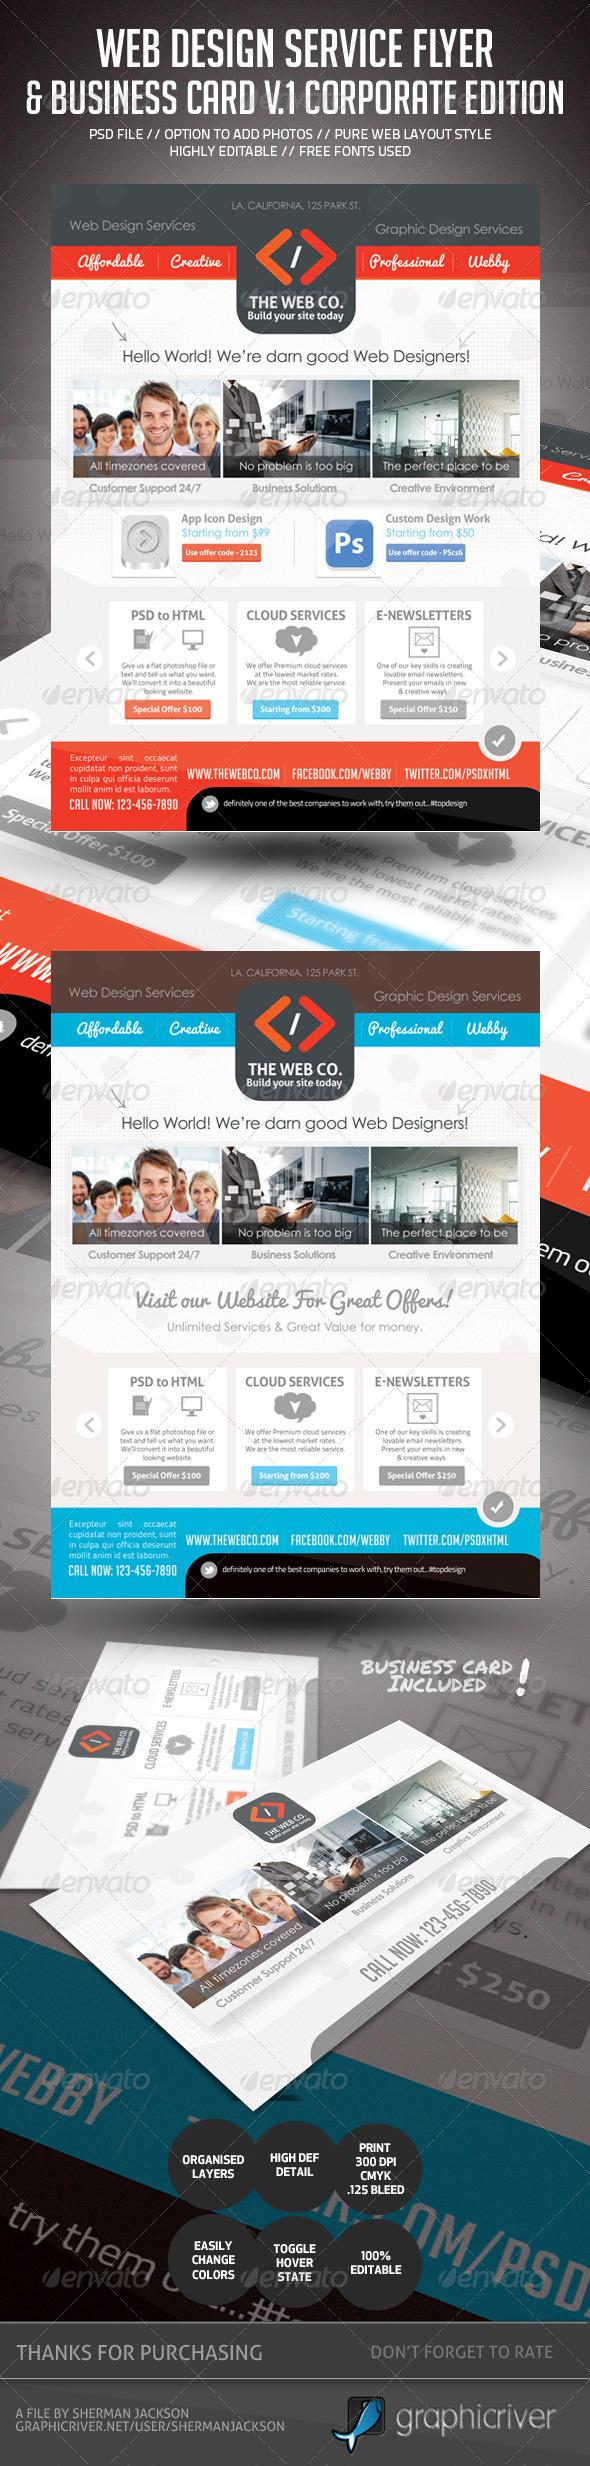 Web Design Service Set 1 Flyer & Business Card